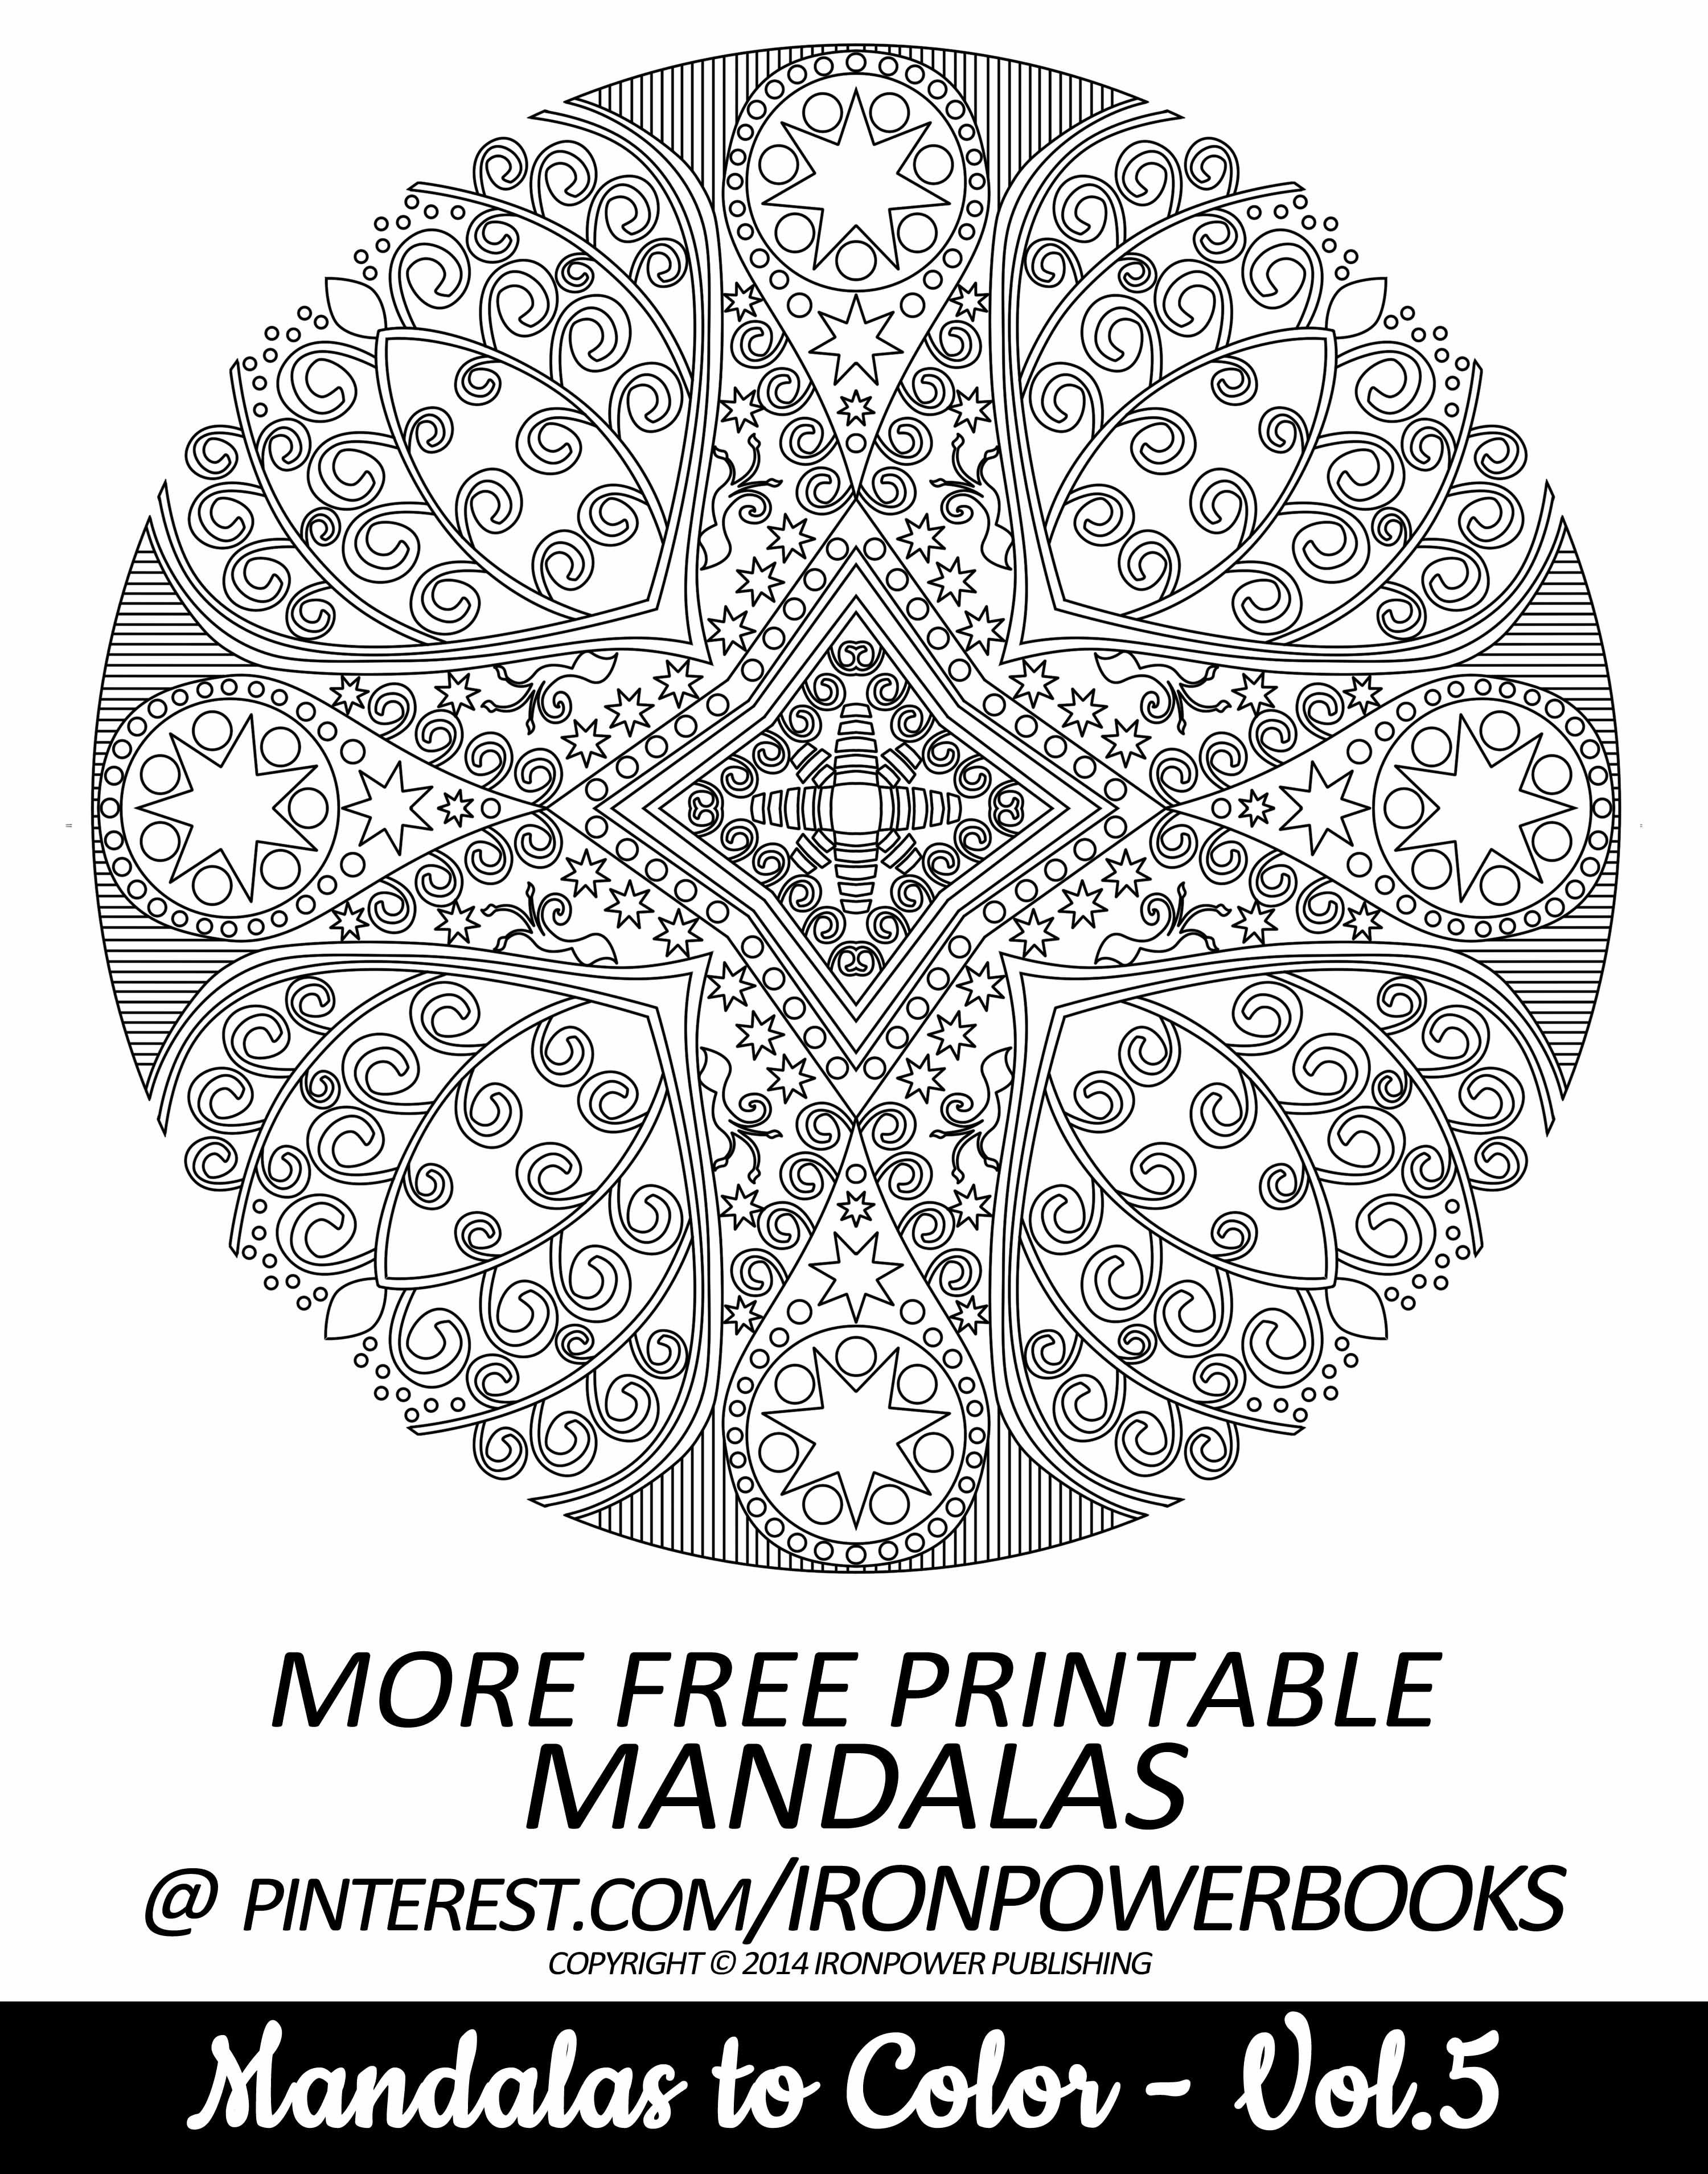 FREE Mandala Coloring Page for Adults | For 49 more unique Mandala Designs check out paperback copy at http://www.amazon.com/Mandalas-Color-Mandala-Coloring-Adults/dp/149733716X | This pin is for personal use only and it will be awesome to pin your colored work in our board!